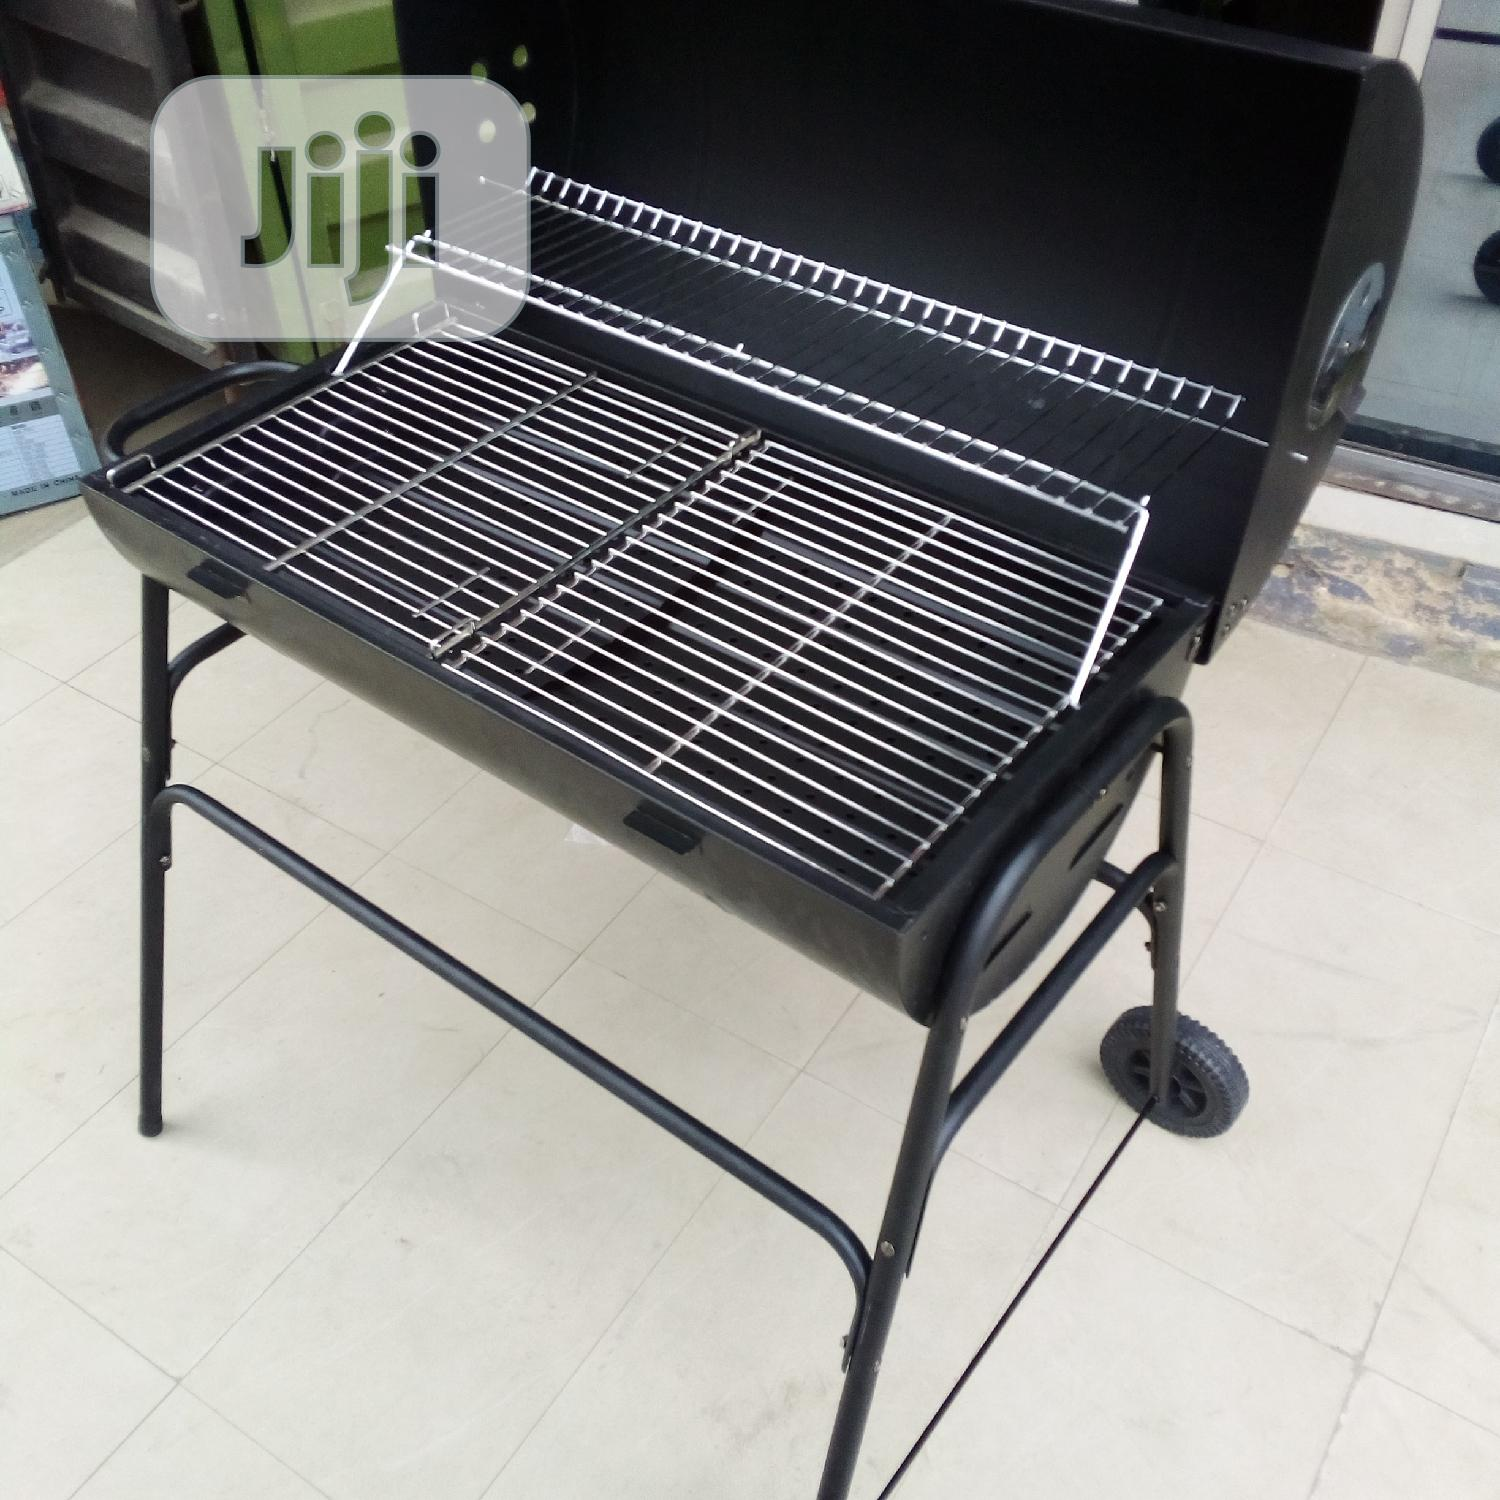 Shackol Barbecue Grill